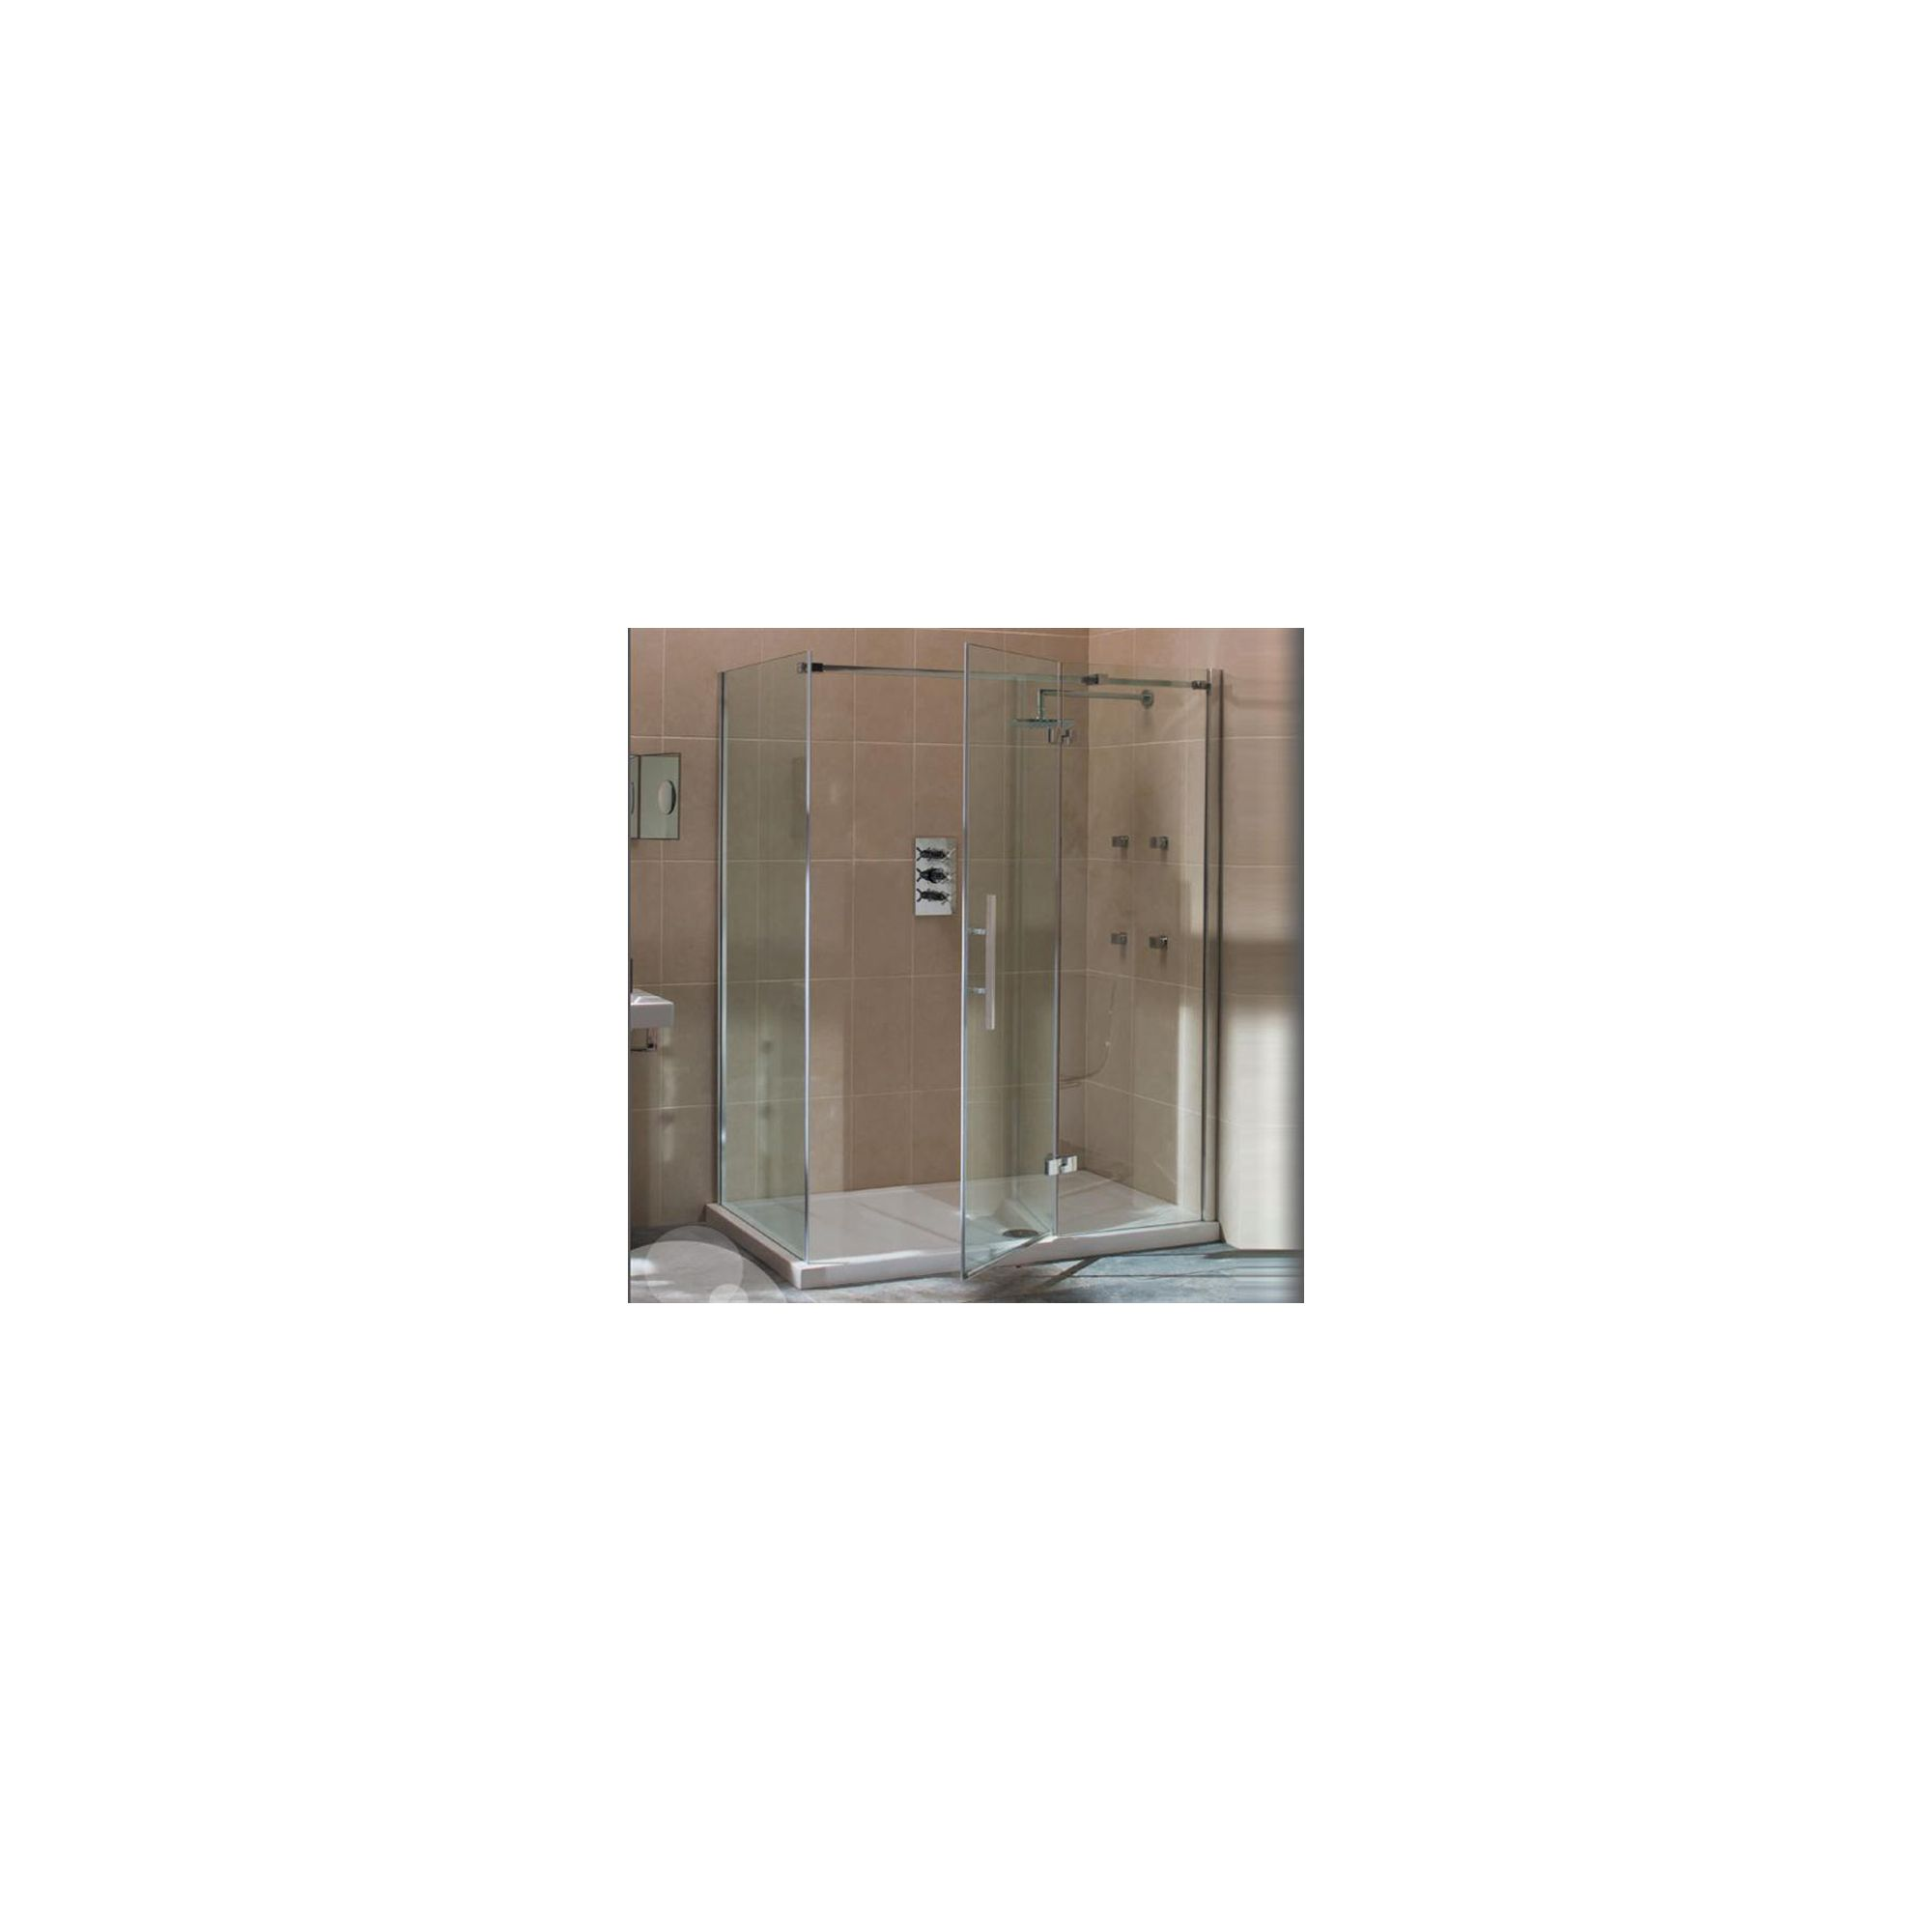 Merlyn Vivid Nine Frameless Hinged Shower Door and Inline Panel, 1200mm Wide, Right Handed, 8mm Glass at Tesco Direct